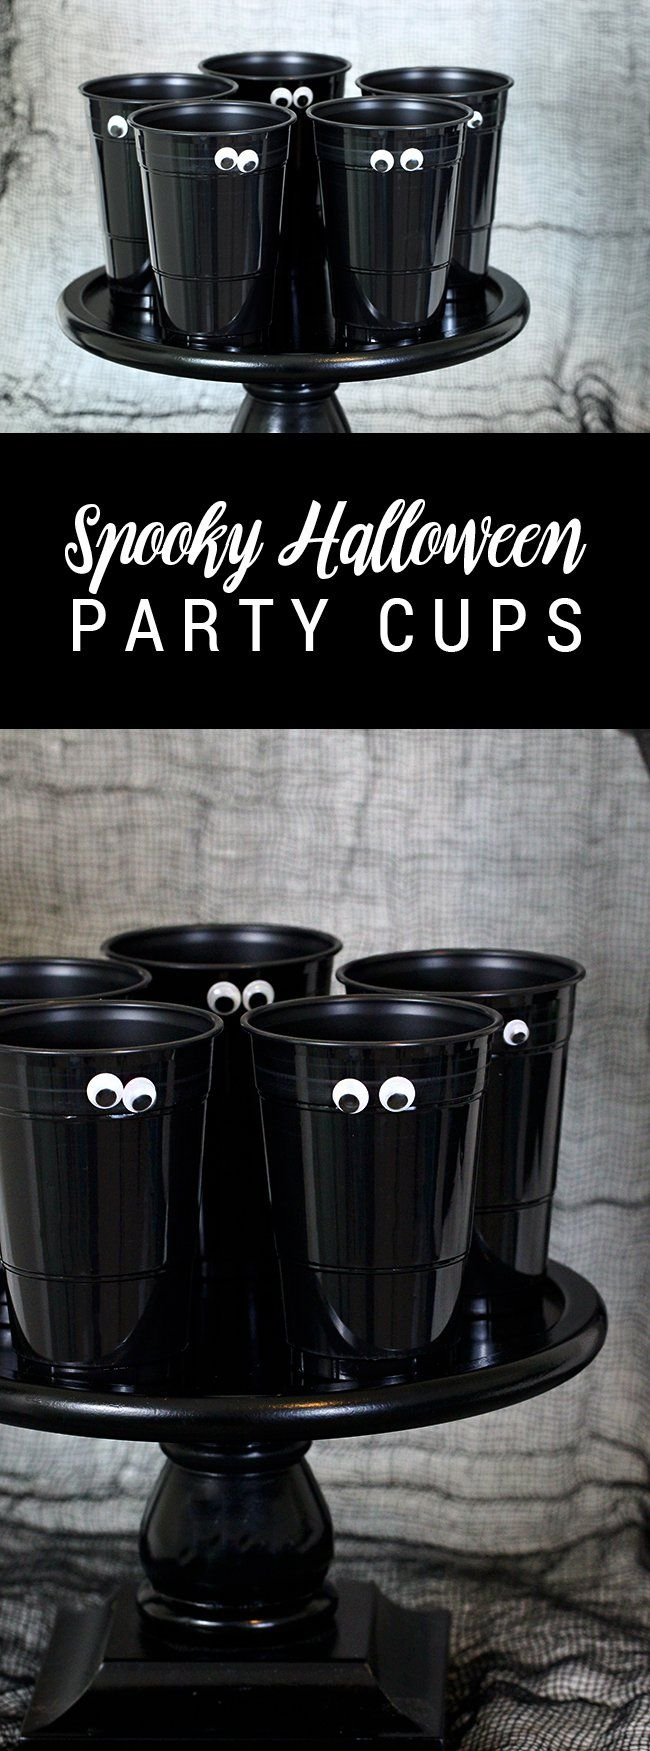 15 fantastische DIY Halloween Party Dekor Ideen für Last-Minute-Inspiration